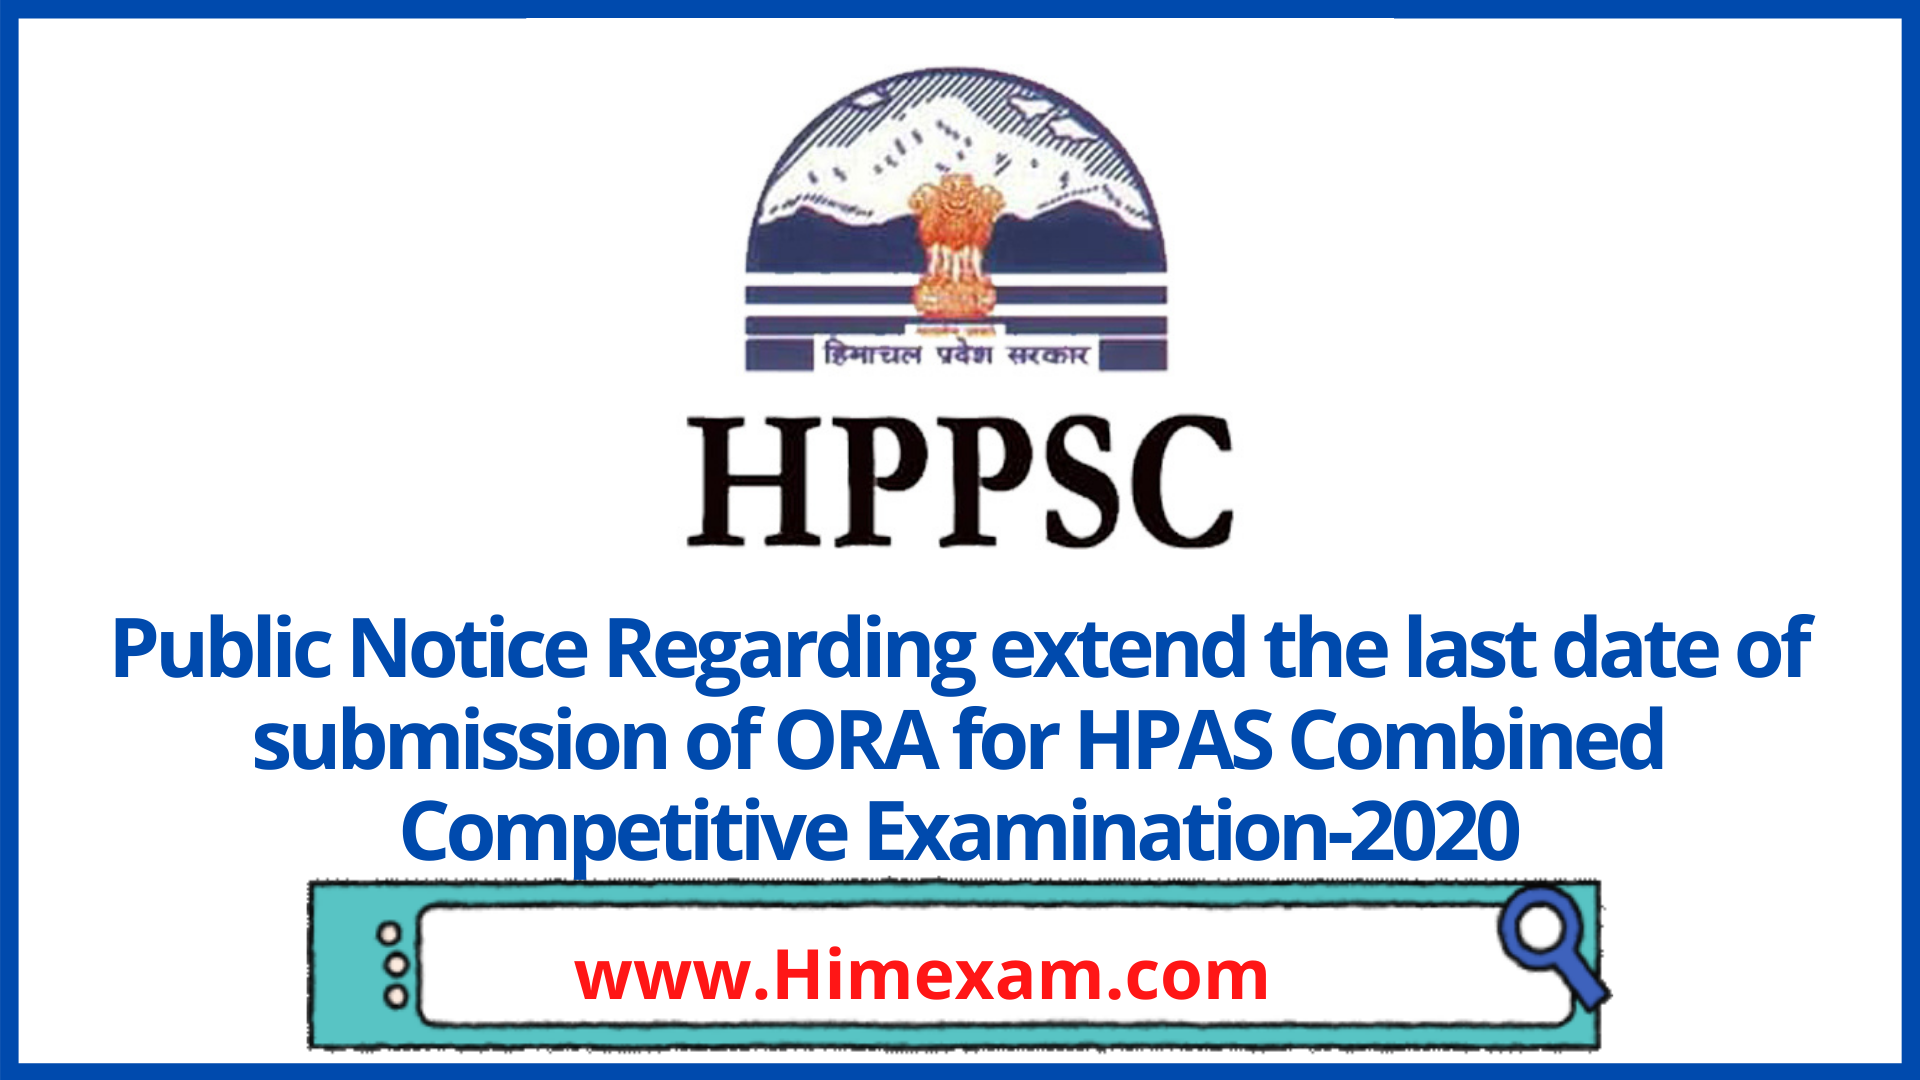 Public Notice Regarding extend the last date of submission of ORA for HPAS Combined Competitive Examination-2020